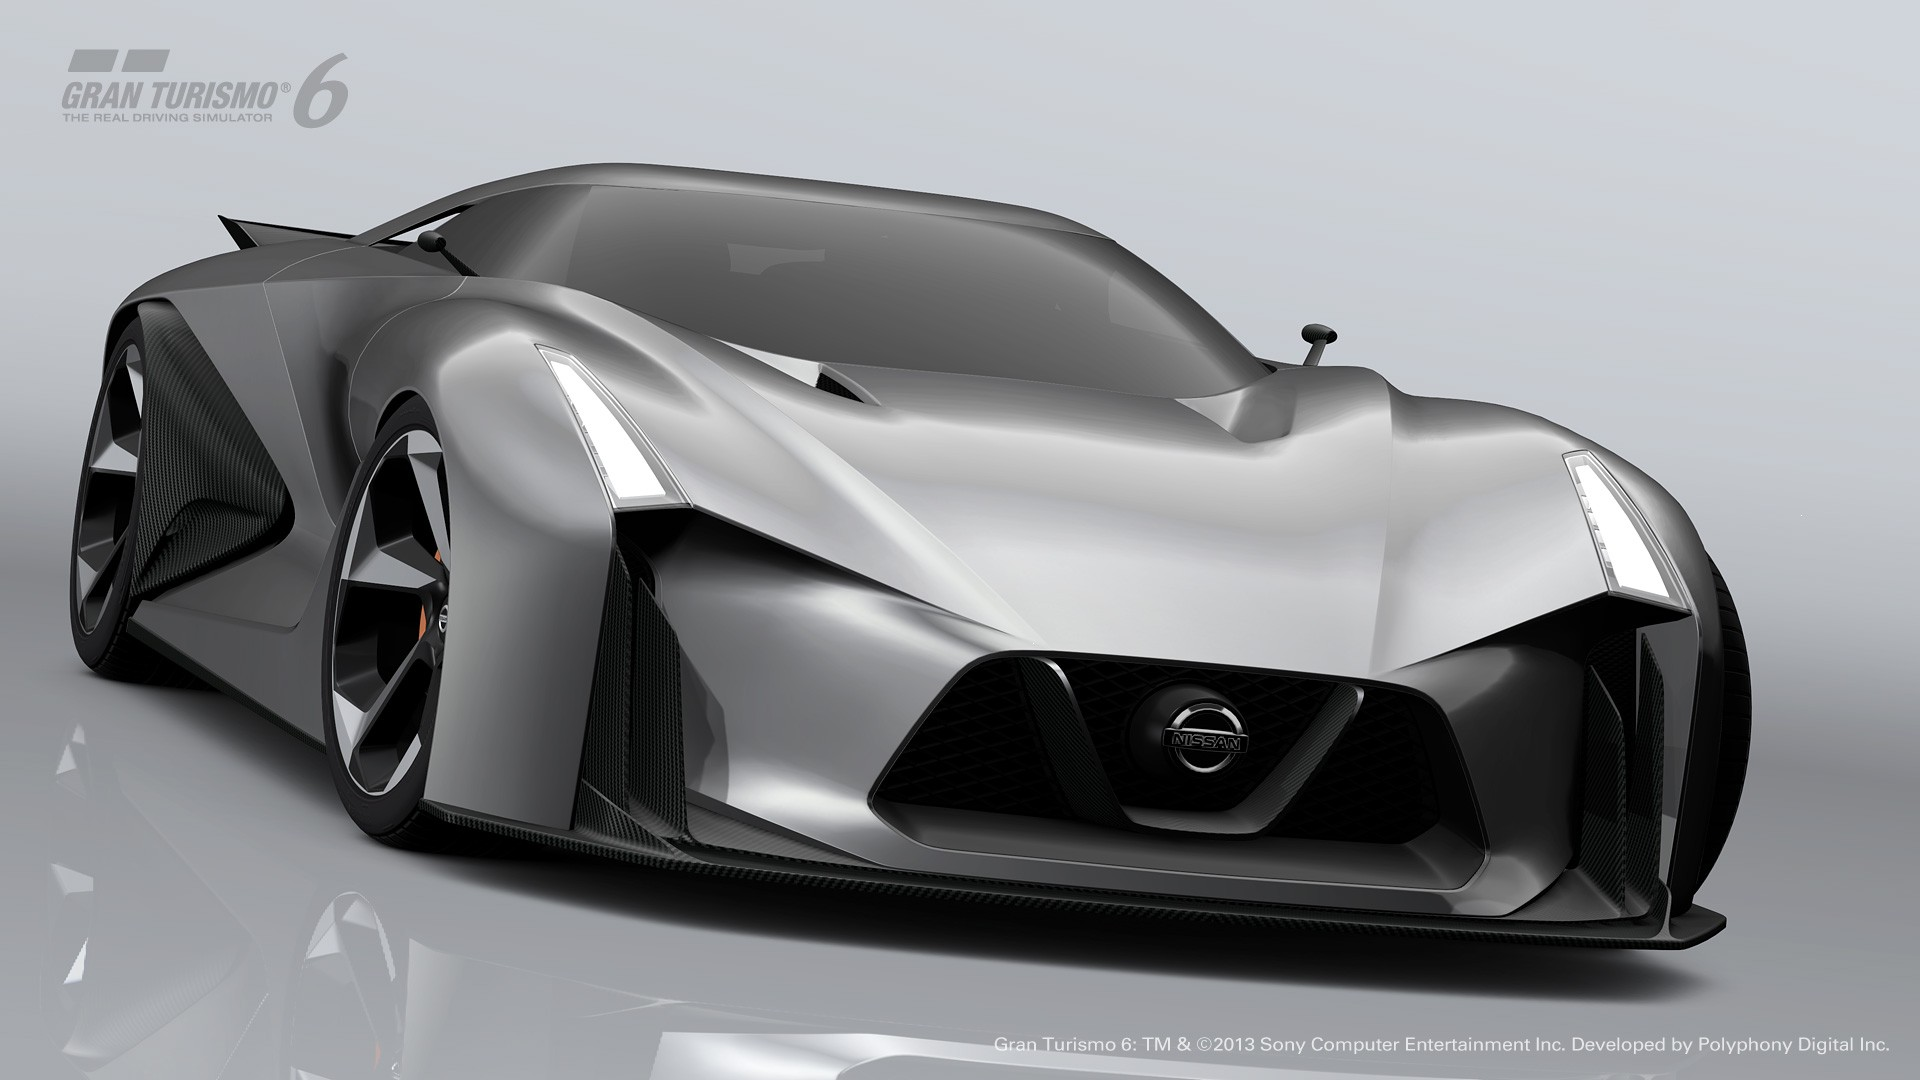 2014_Nissan_Concept_2020_Vision_Gran_Turismo_028_0929.jpg